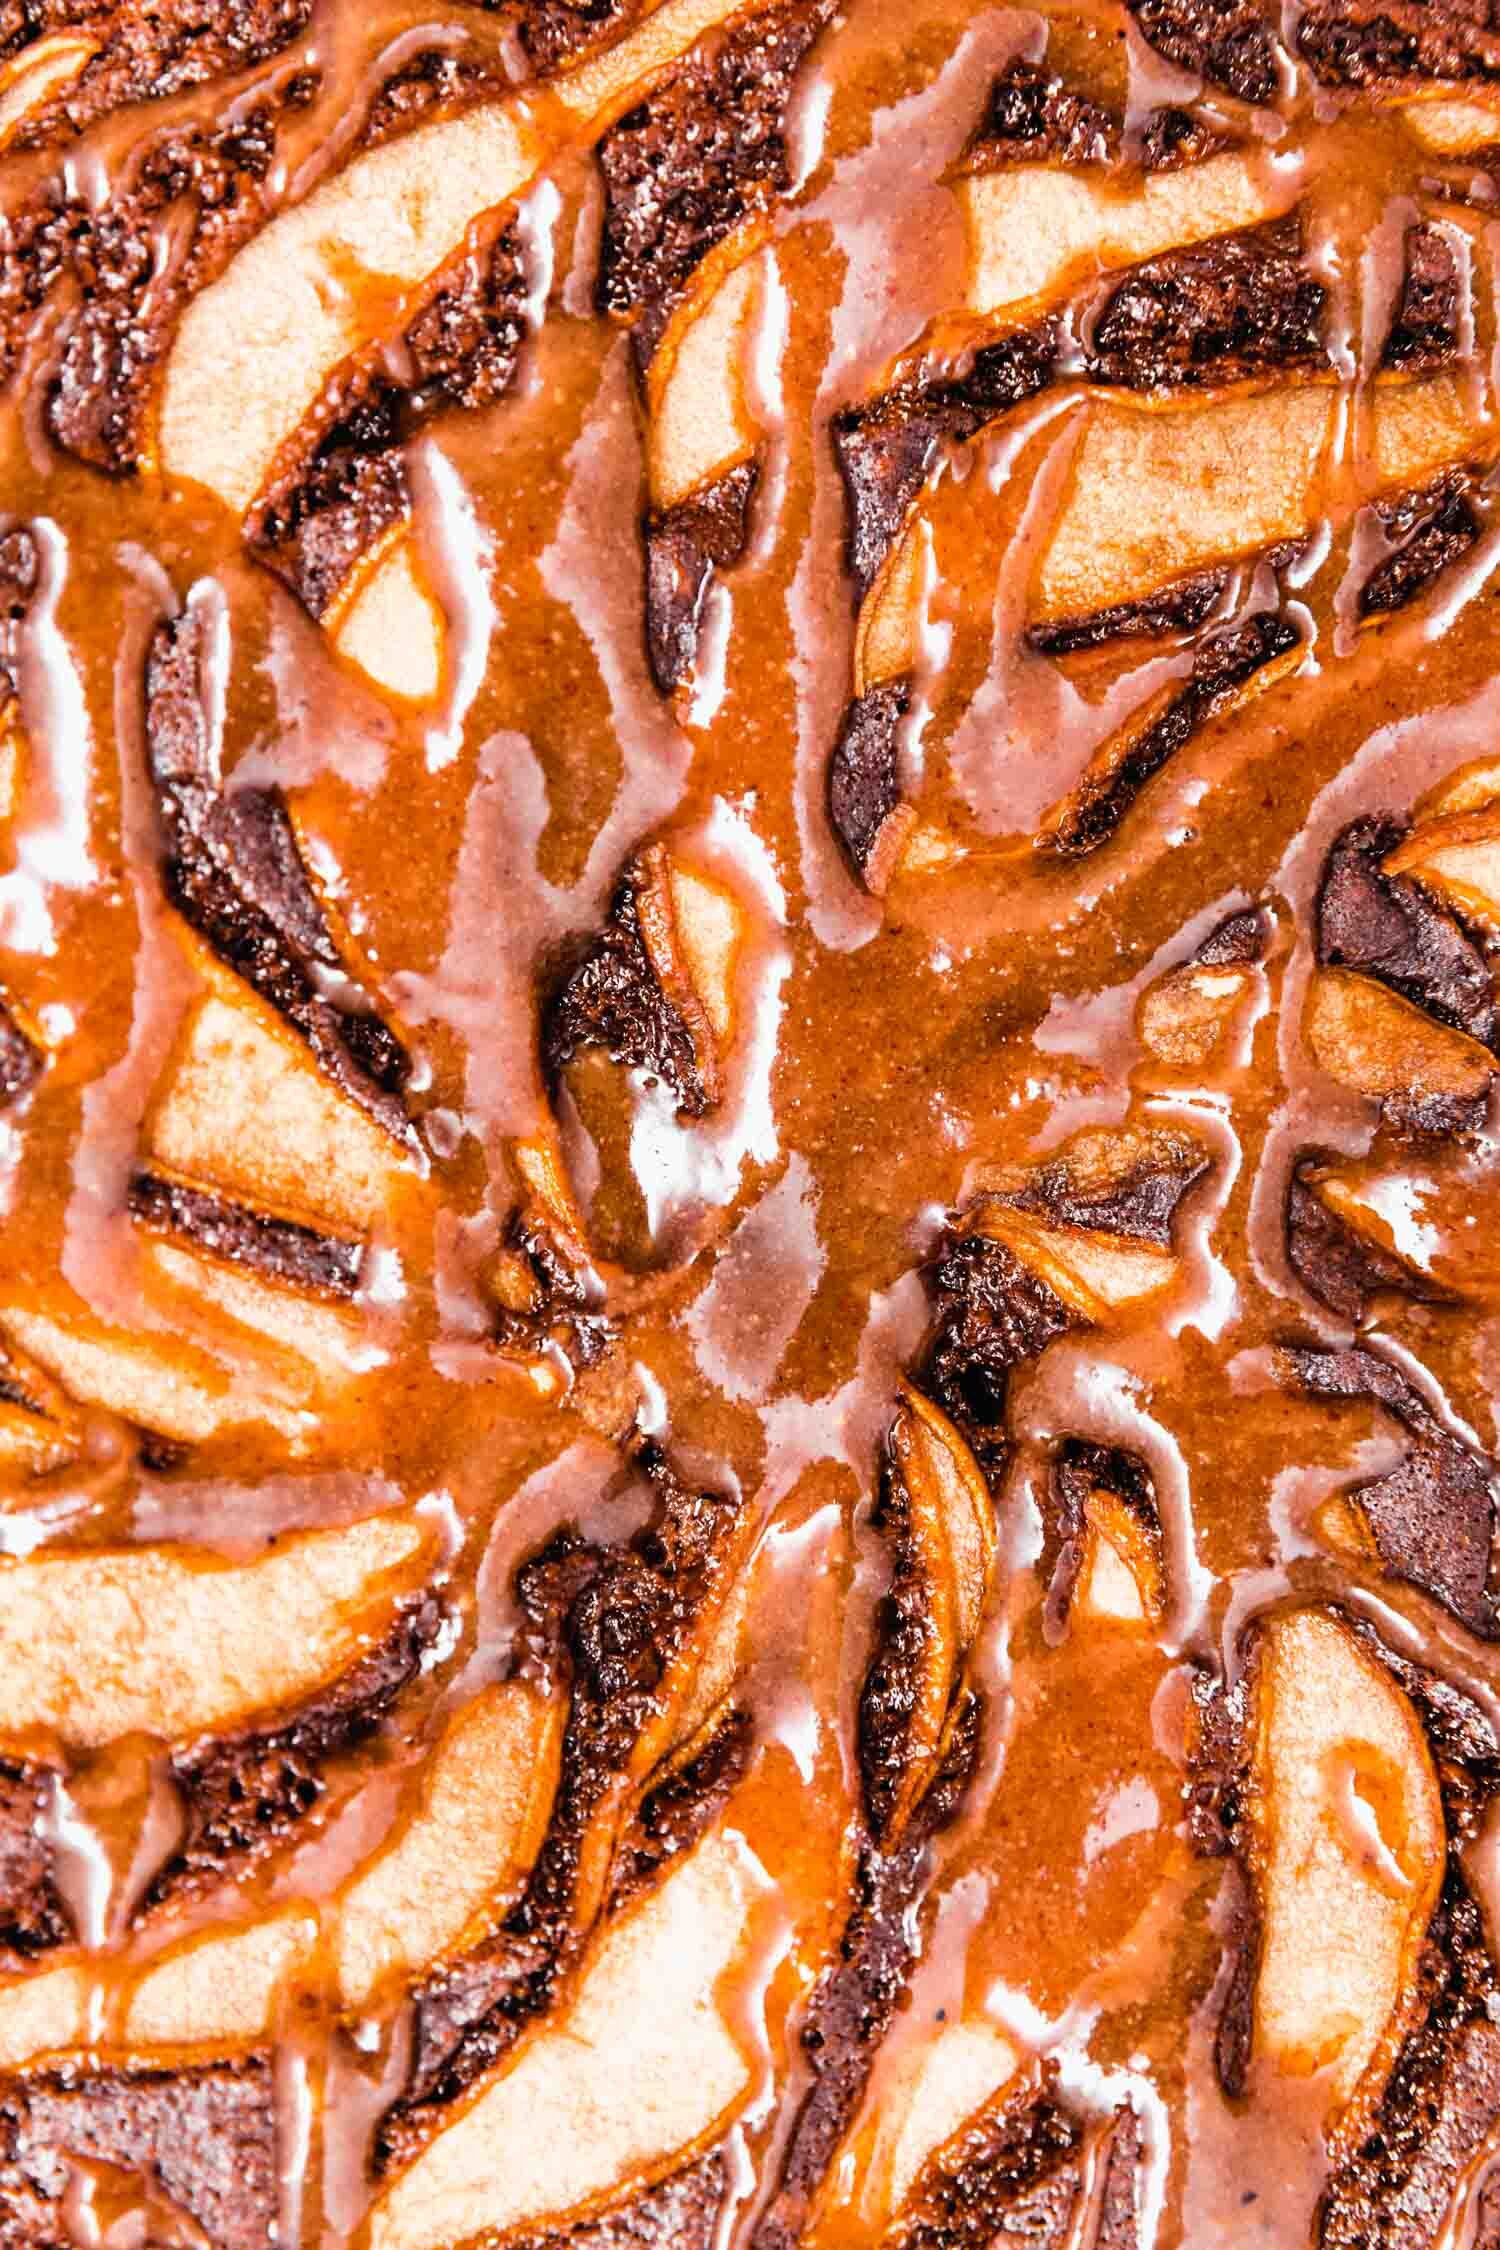 Vegan Maple Pecan Sauce that's so quick and easy, it can be ready in two minutes. #autumn #fallflavors #plantbasedrecipe #maple #pecan #vegantopping #vegansweets #vegancaramel #maplepecansauce #stickytoffee #ooeygooey #vegandessert #vegansauce